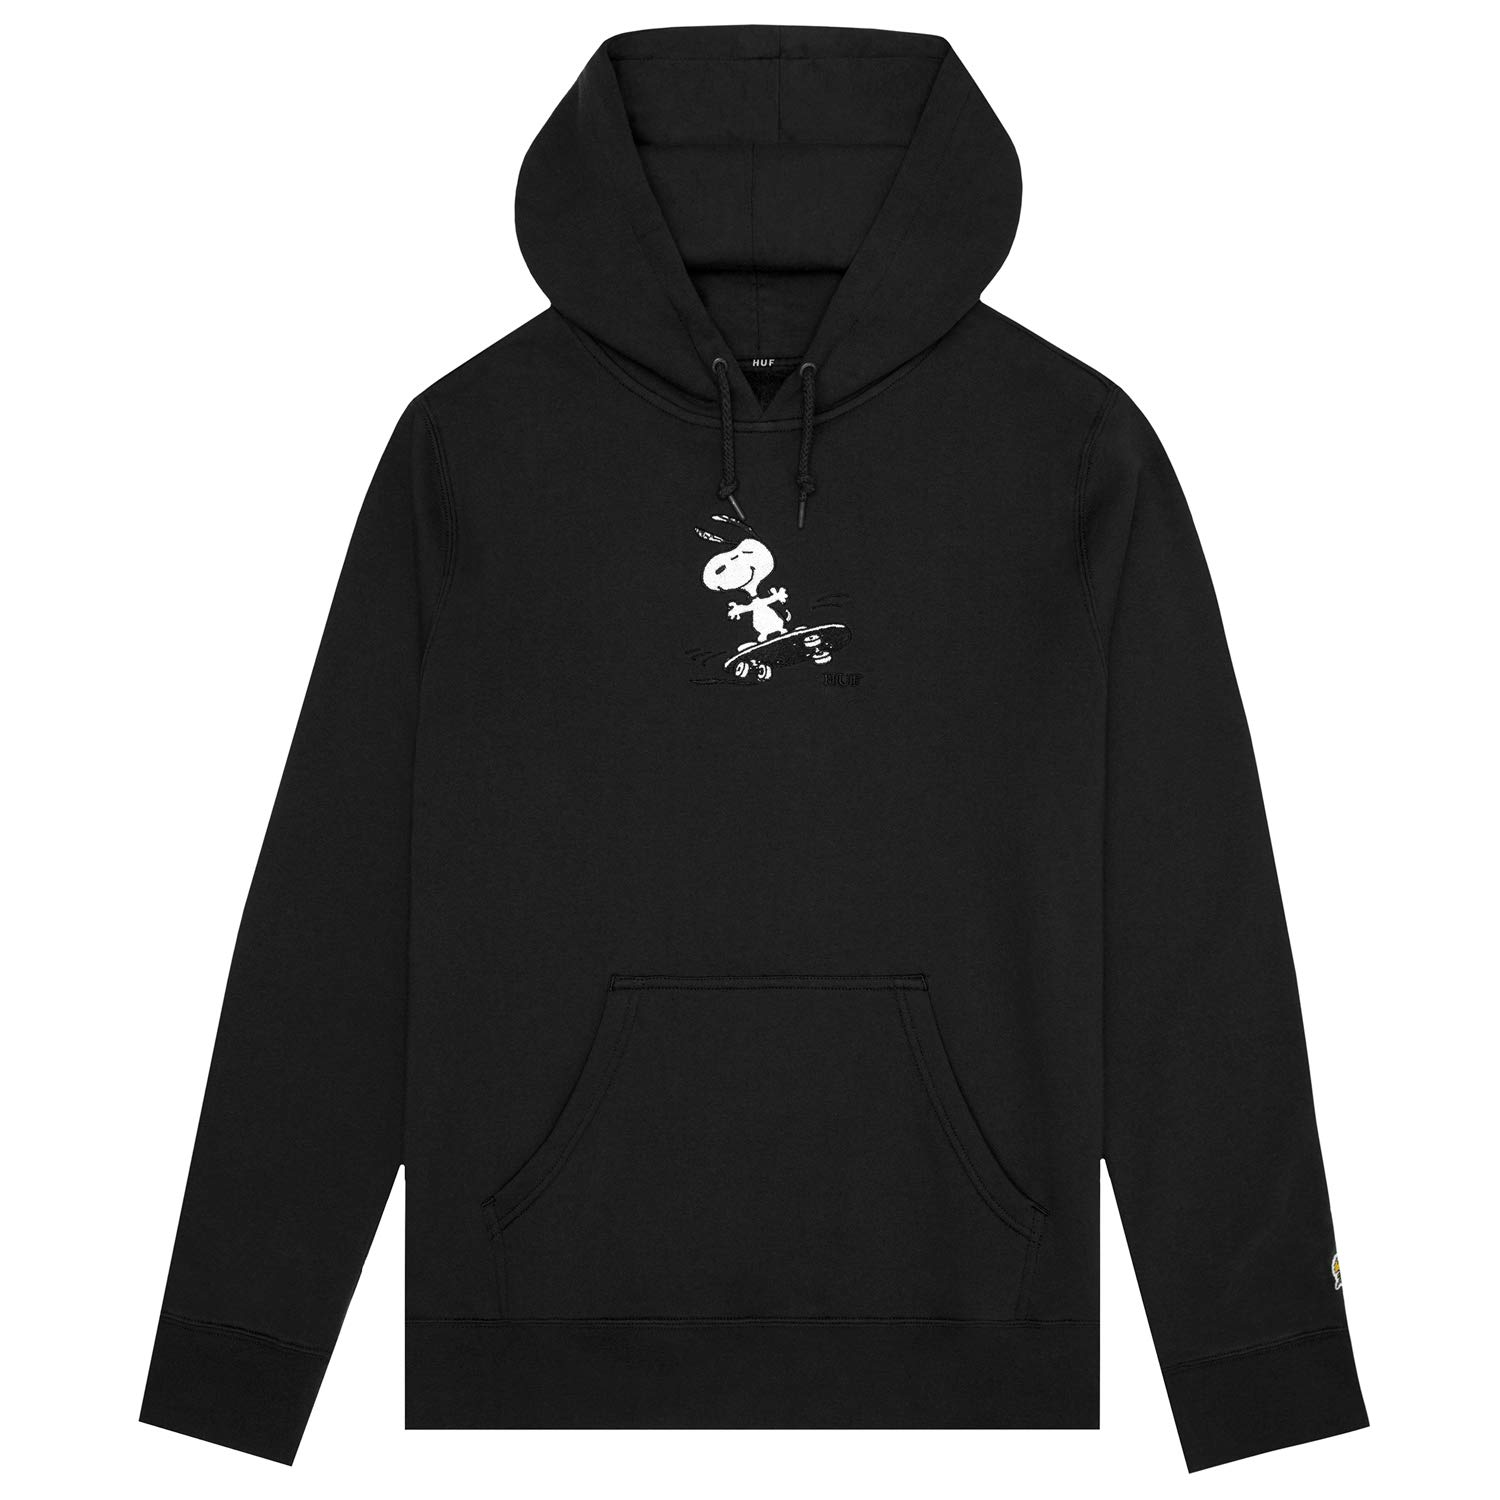 2d2ab61bed Amazon.com  HUF Men s Peanuts Snoopy Skates Hoodie  Clothing